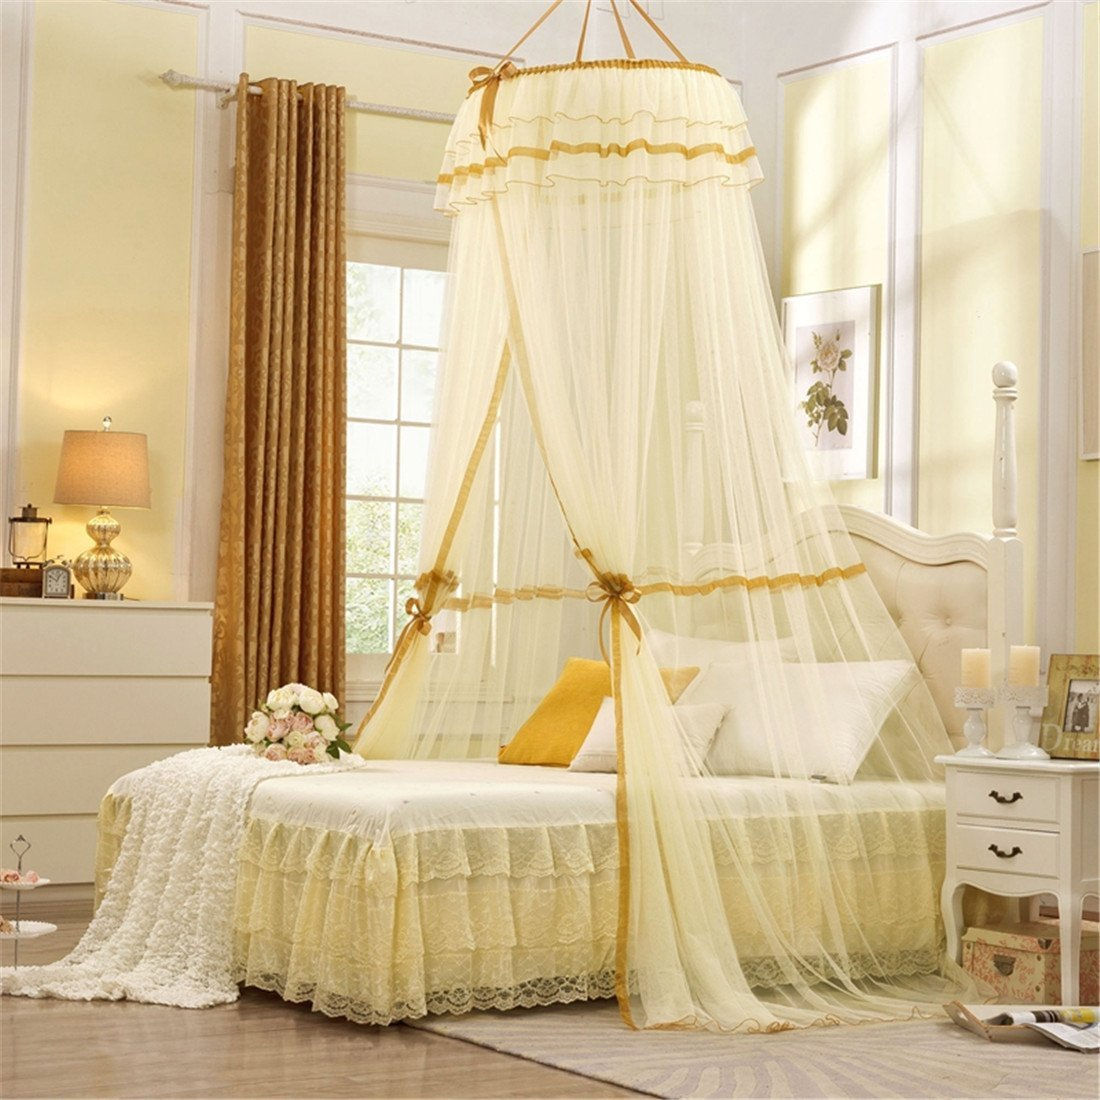 amazoncom round hoop princess pastoral lace bed canopy mosquito net fit crib twin full queen yellow home kitchen - Yellow Canopy Interior